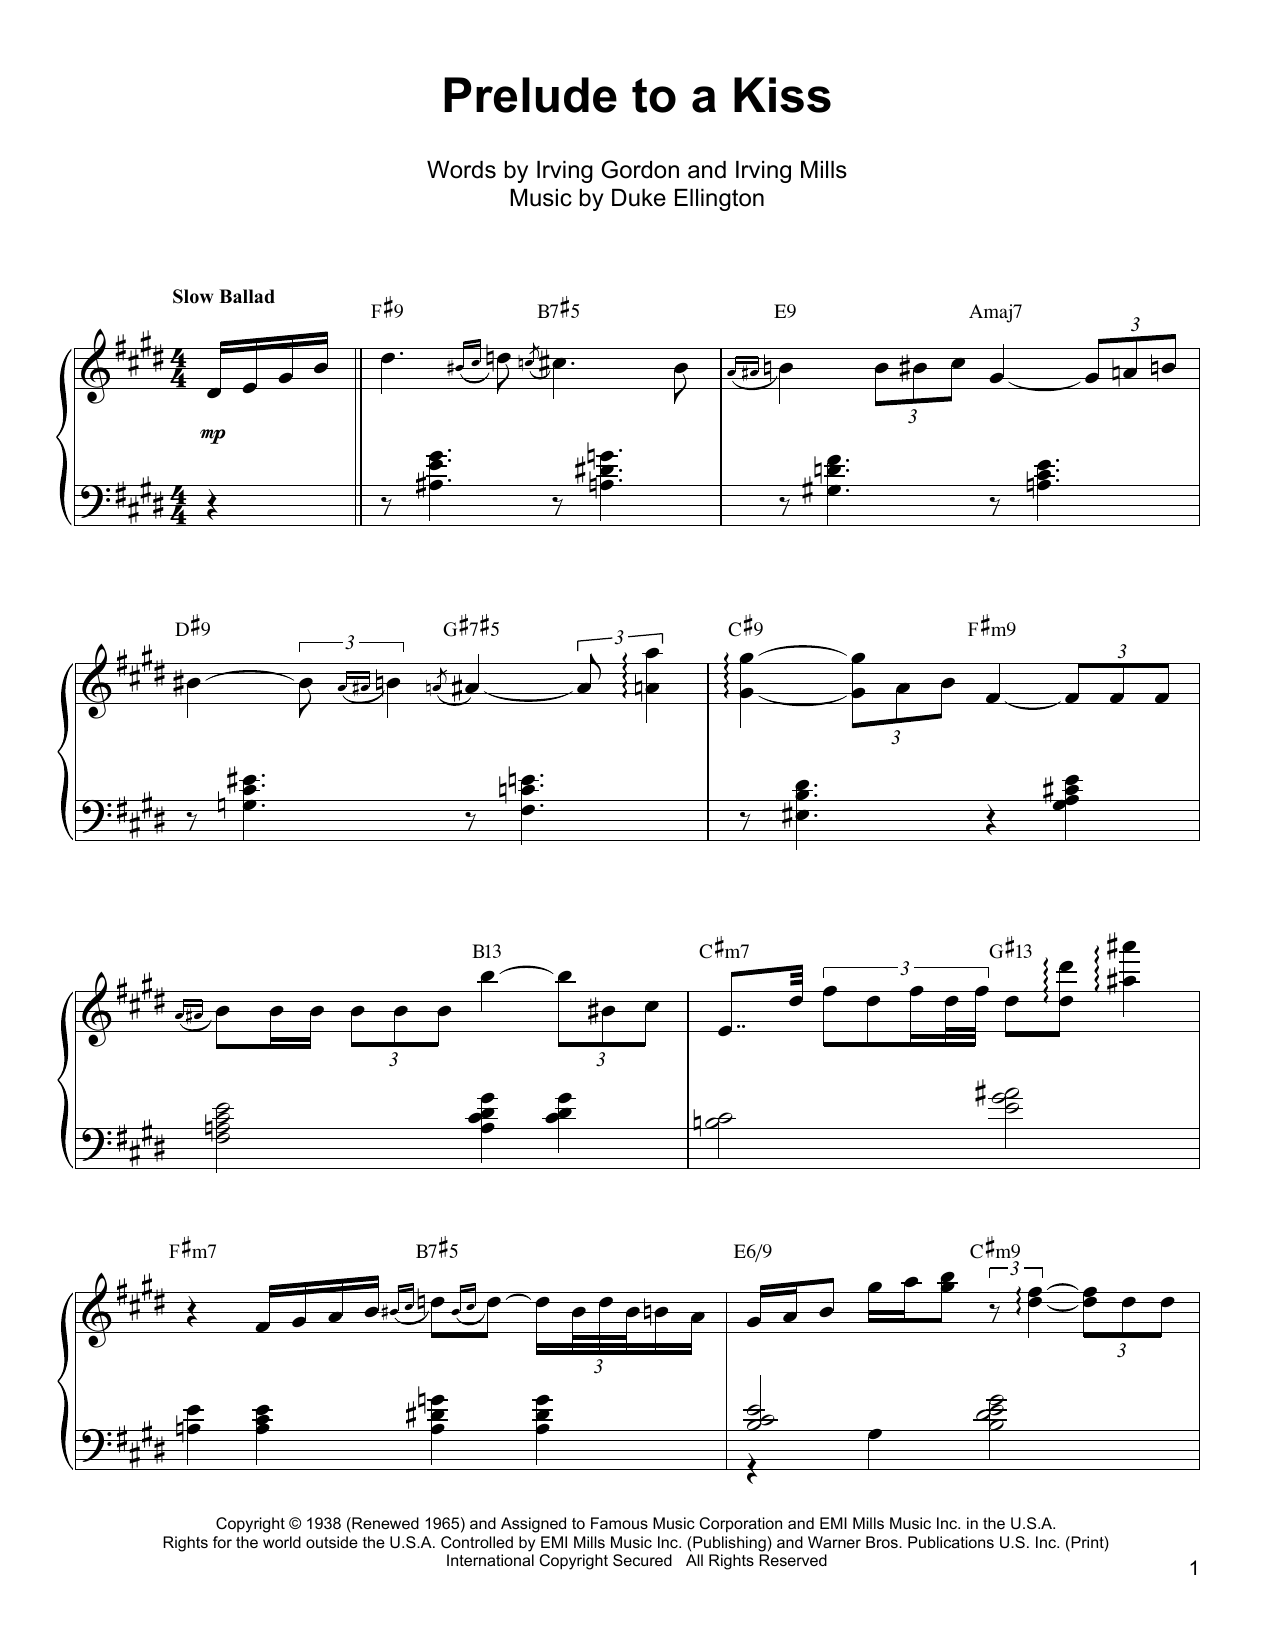 Oscar Peterson Prelude To A Kiss sheet music notes and chords. Download Printable PDF.